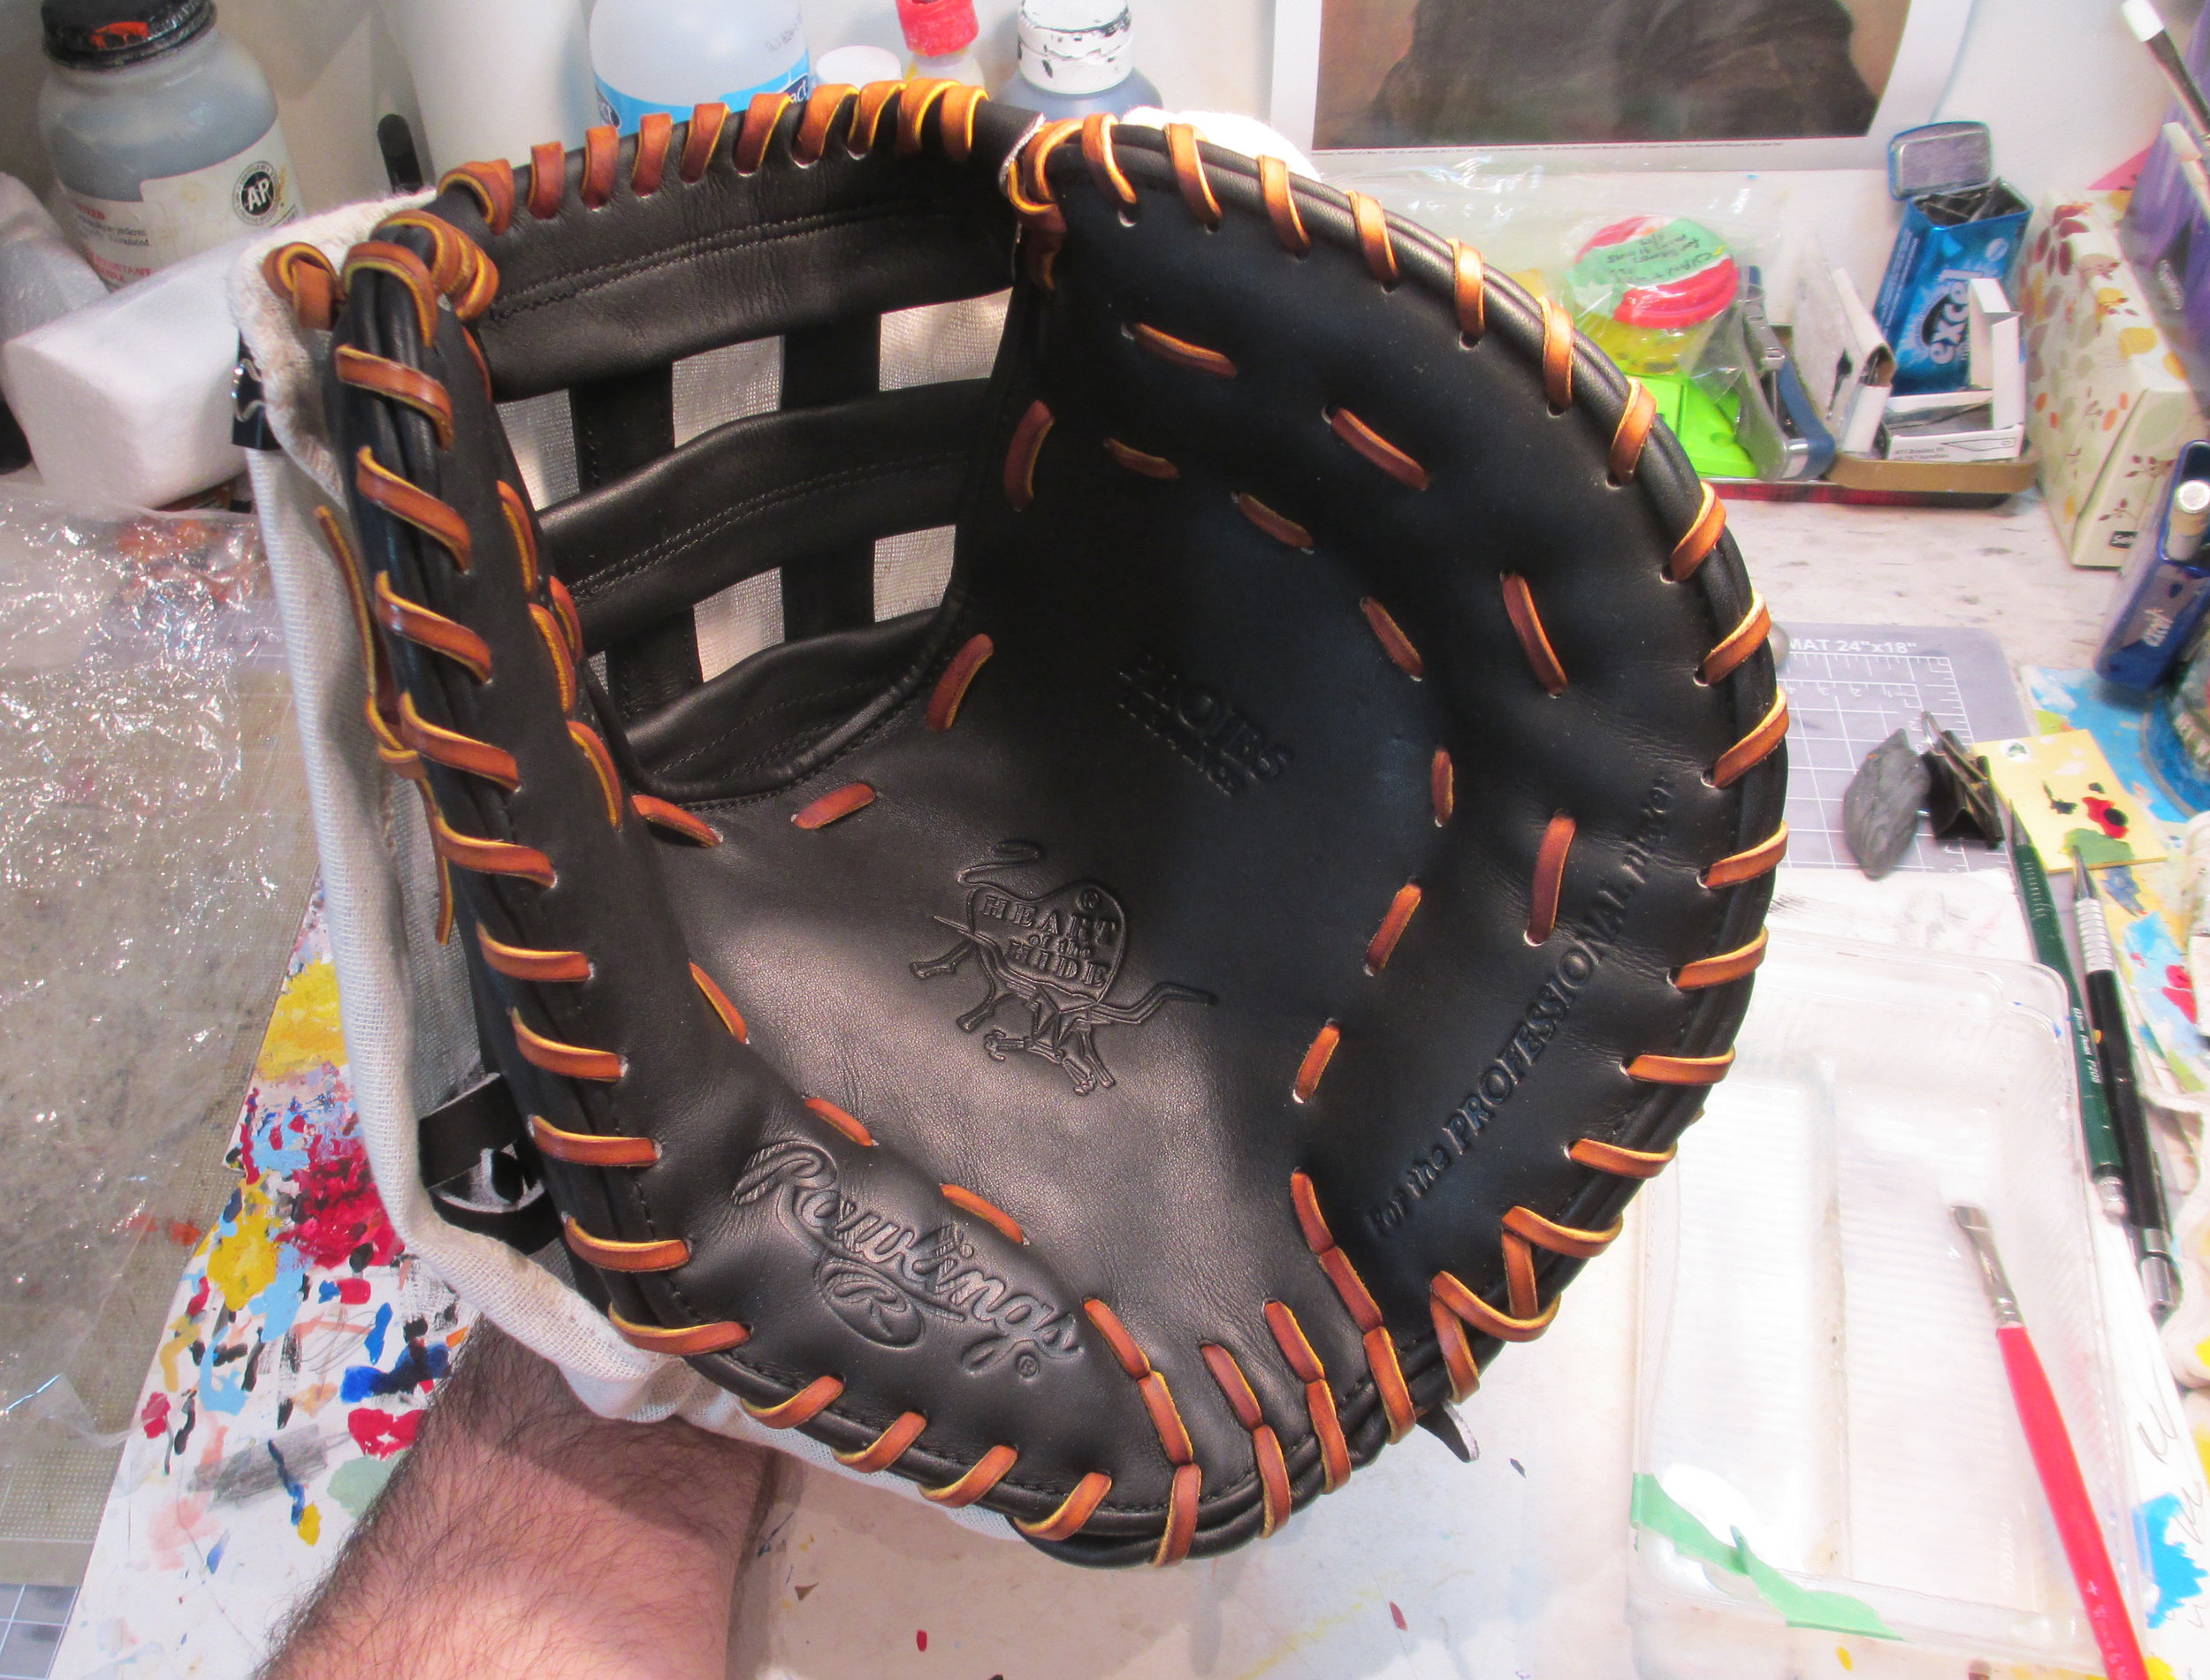 Sean-Kane-Jeff-Bagwell-Rawlings-Baseball-Glove-First-base-Mitt-1000w.jpg